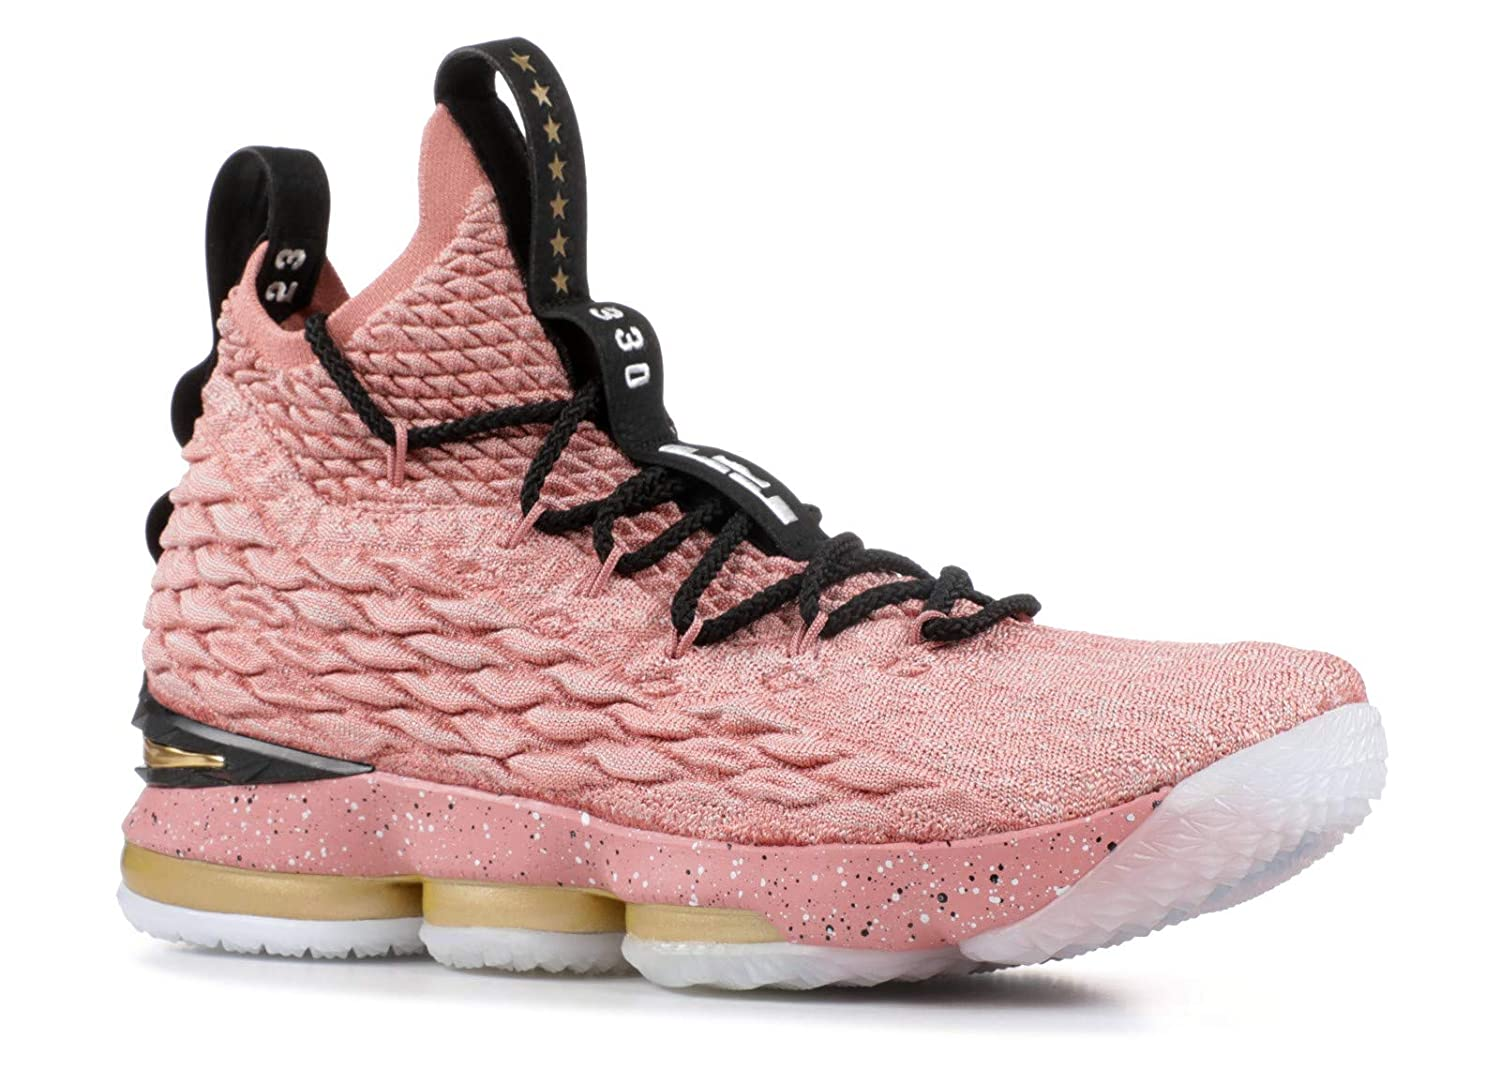 low priced e9836 07411 Nike Lebron 15 XV LMTD Hollywood Rustic Pink Mens Sizes 897650 600